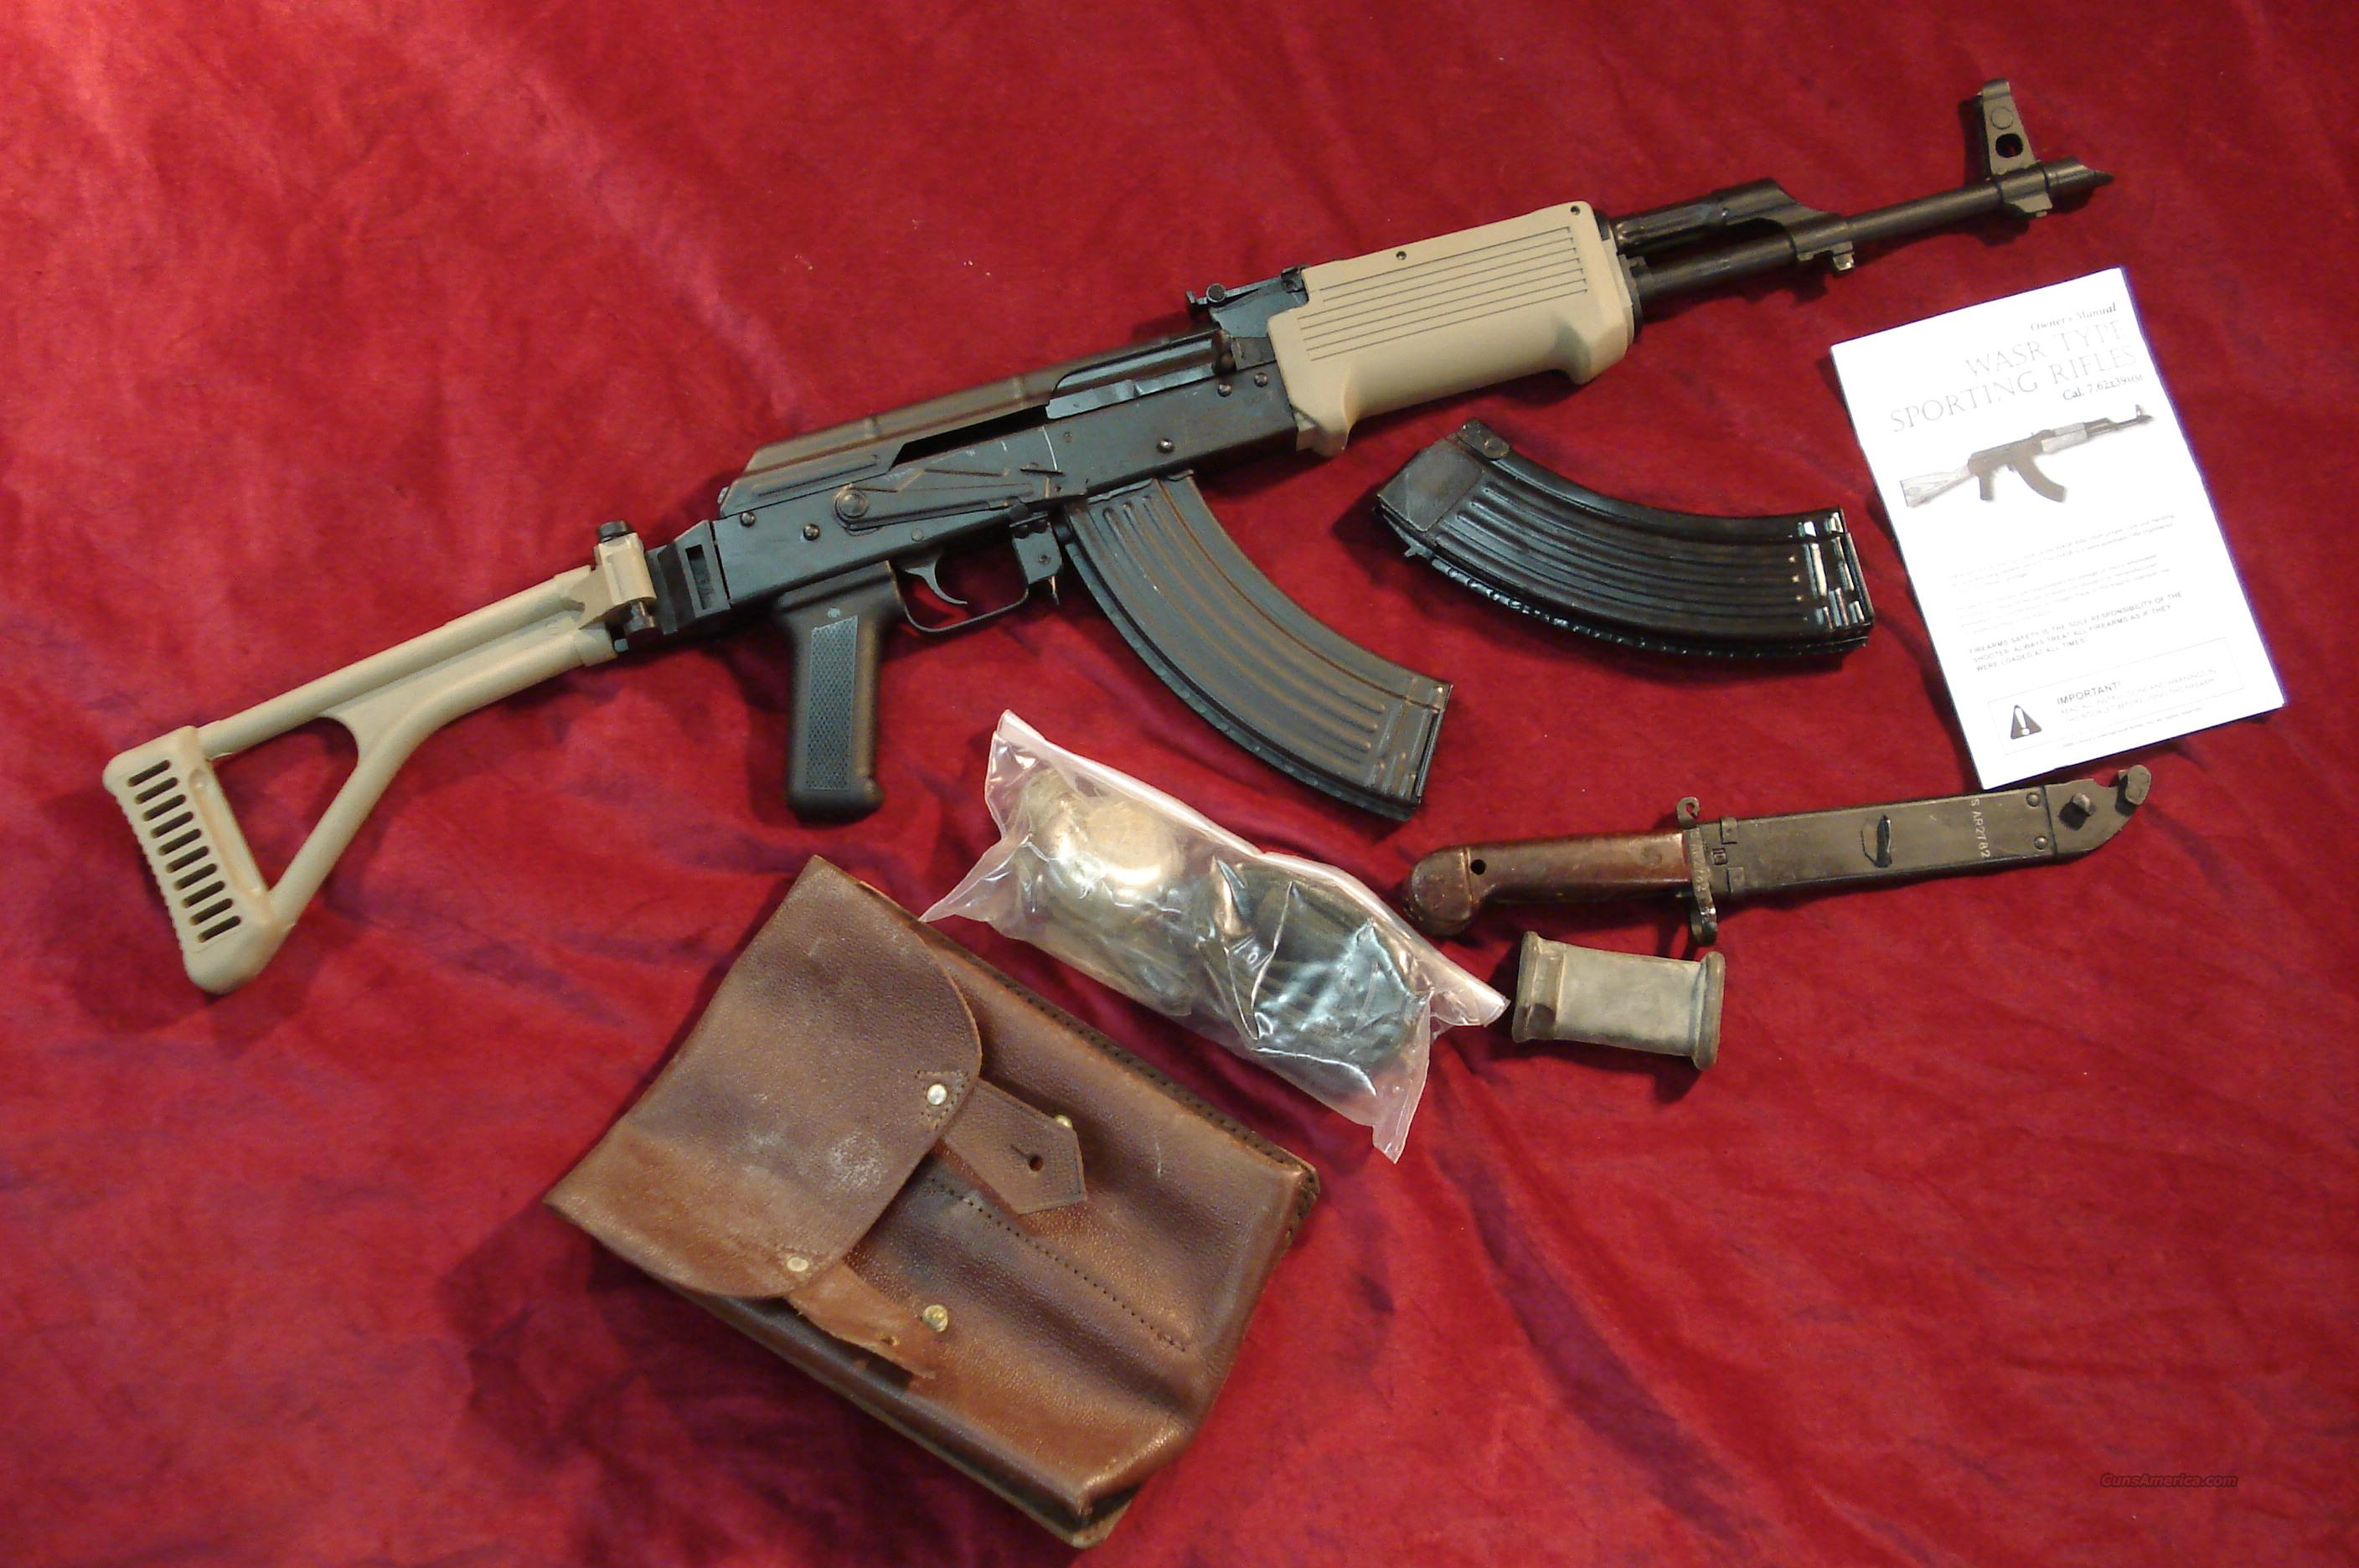 CENTURY AK-47 DARK EARTH SIDE FOLDING STOCK SET WITH  ACCESSORIES NEW  Guns > Rifles > AK-47 Rifles (and copies) > Folding Stock